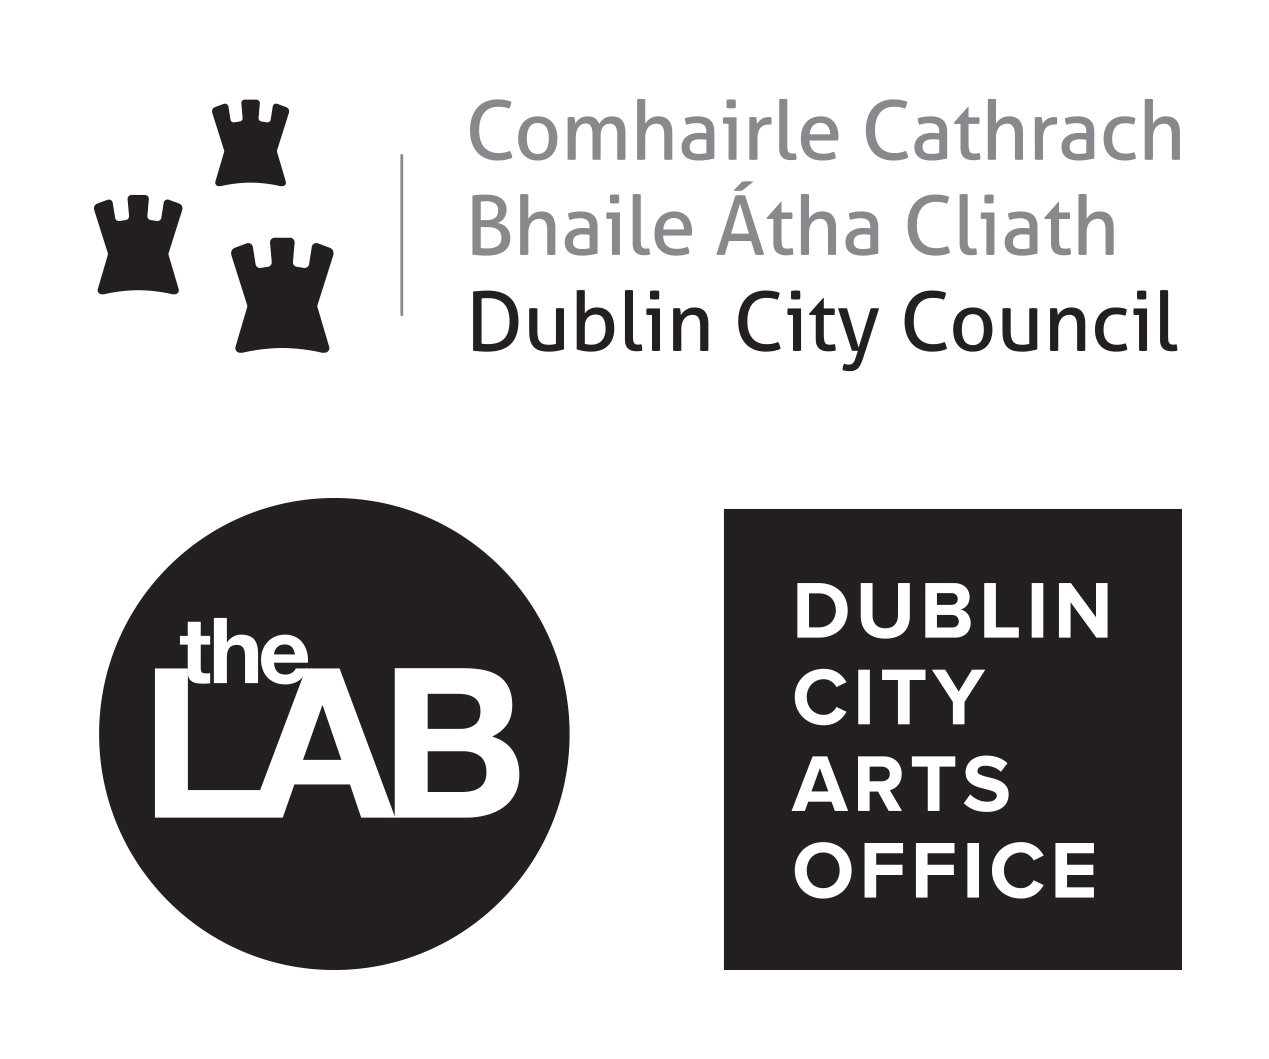 Dublin City Council Arts Office logo